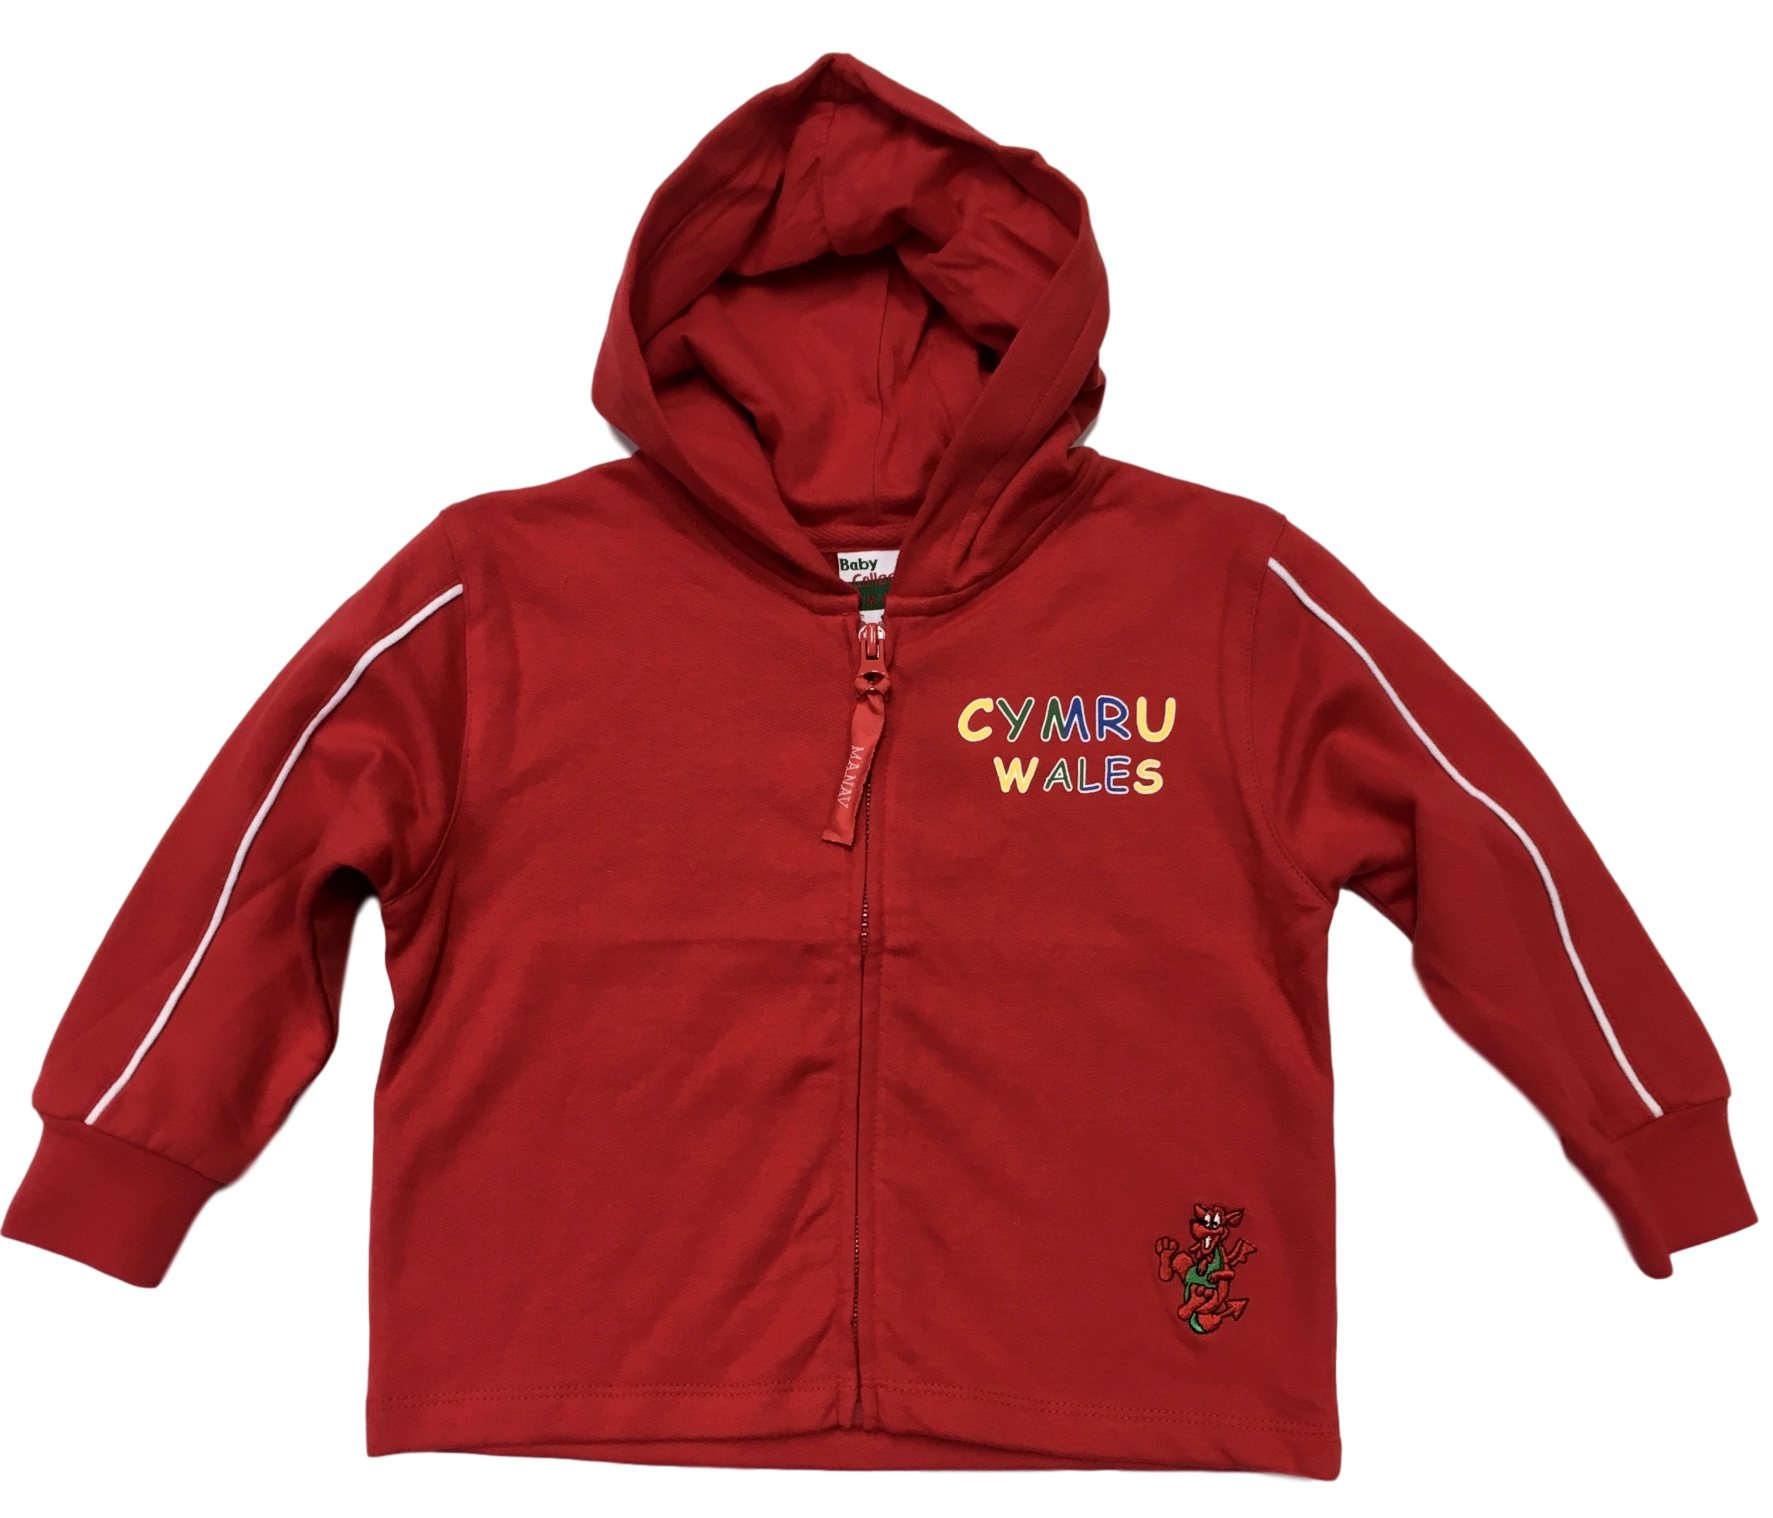 Baby Zip Welsh Hoody